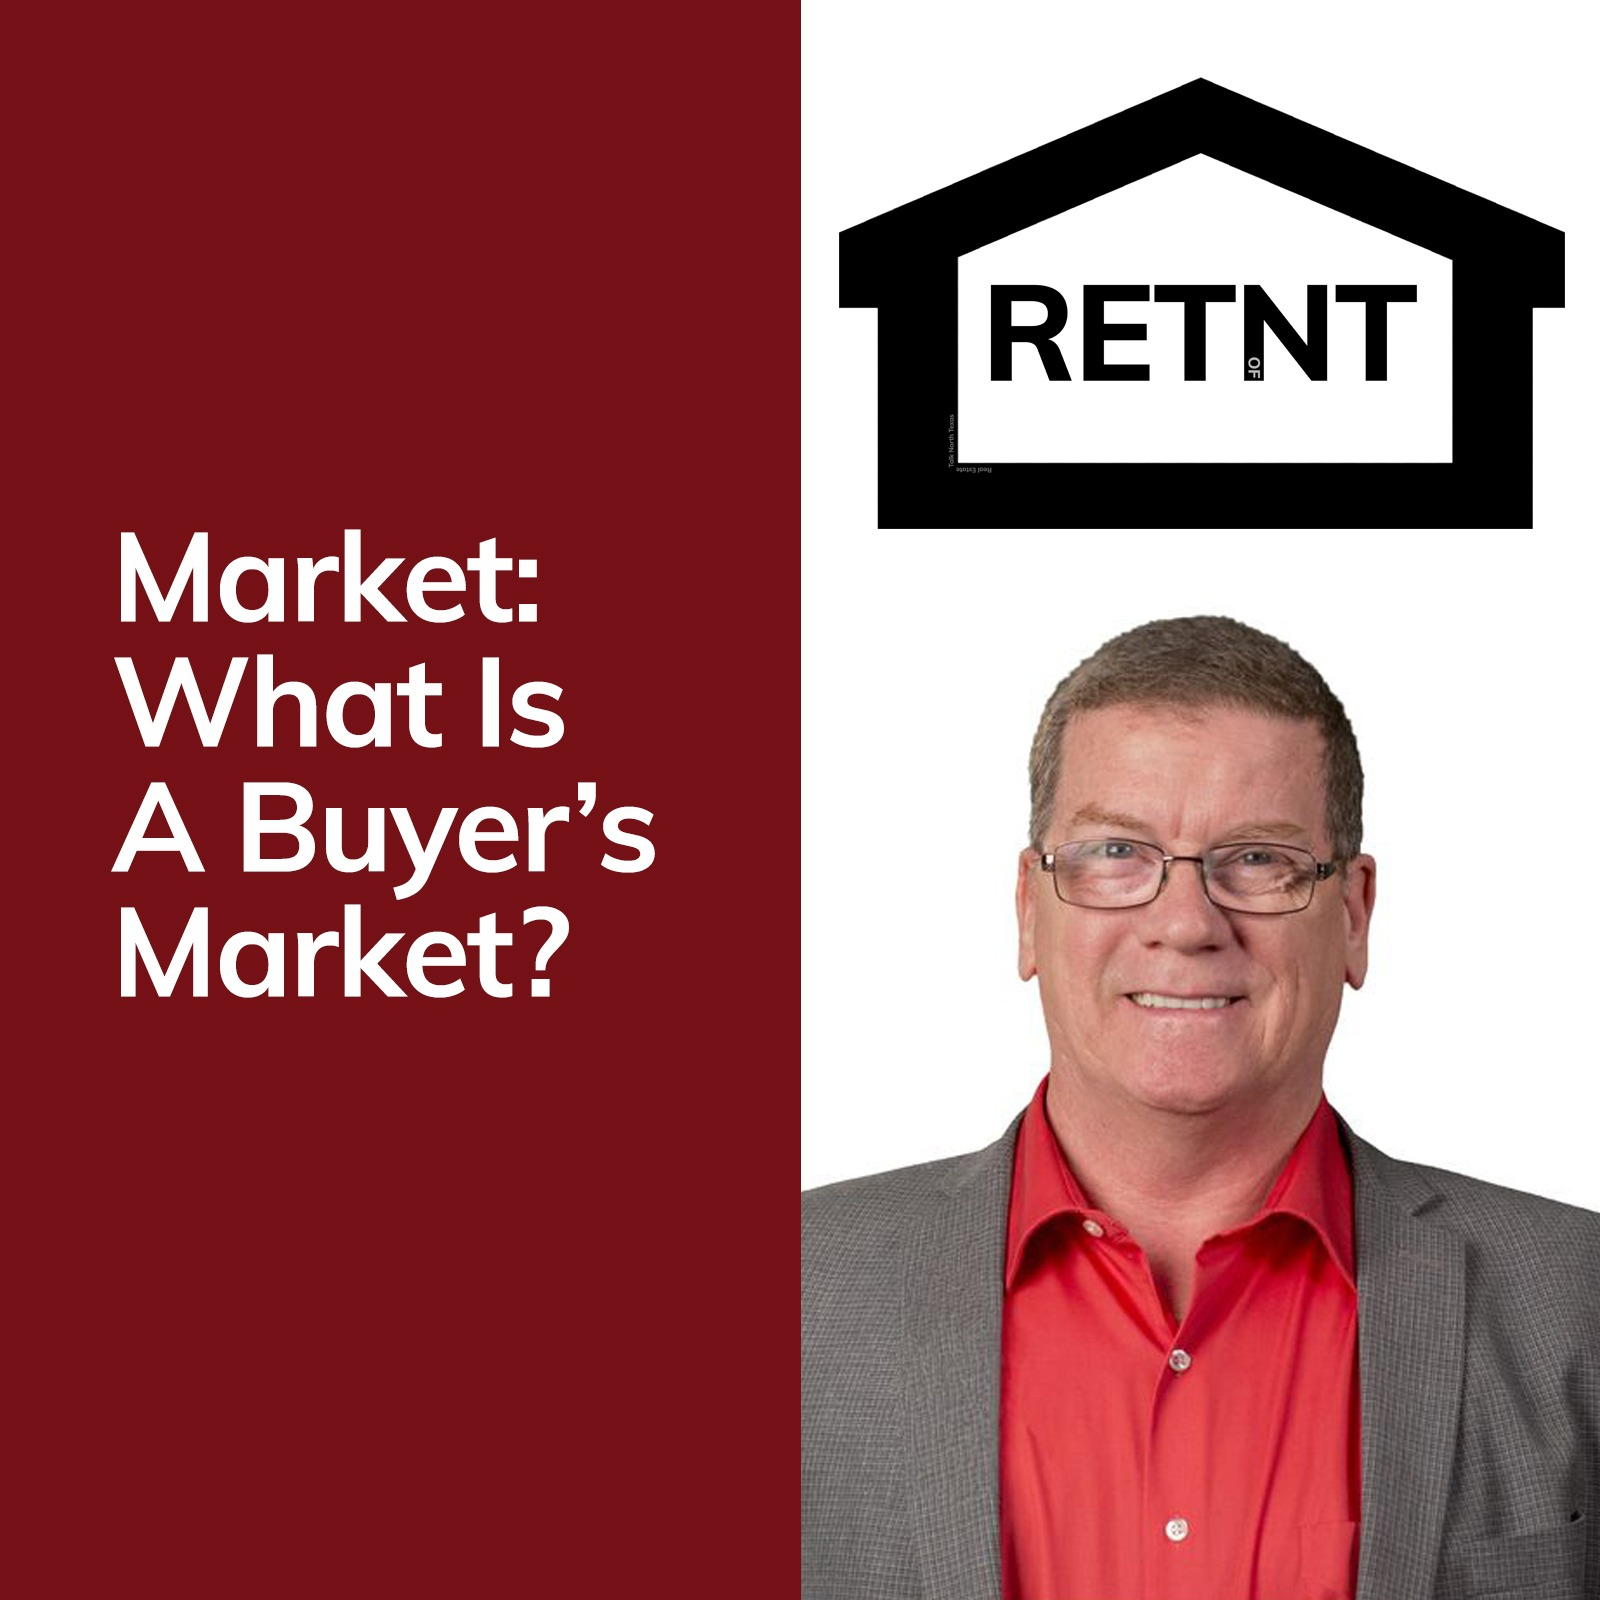 What Is A Buyer's Market?